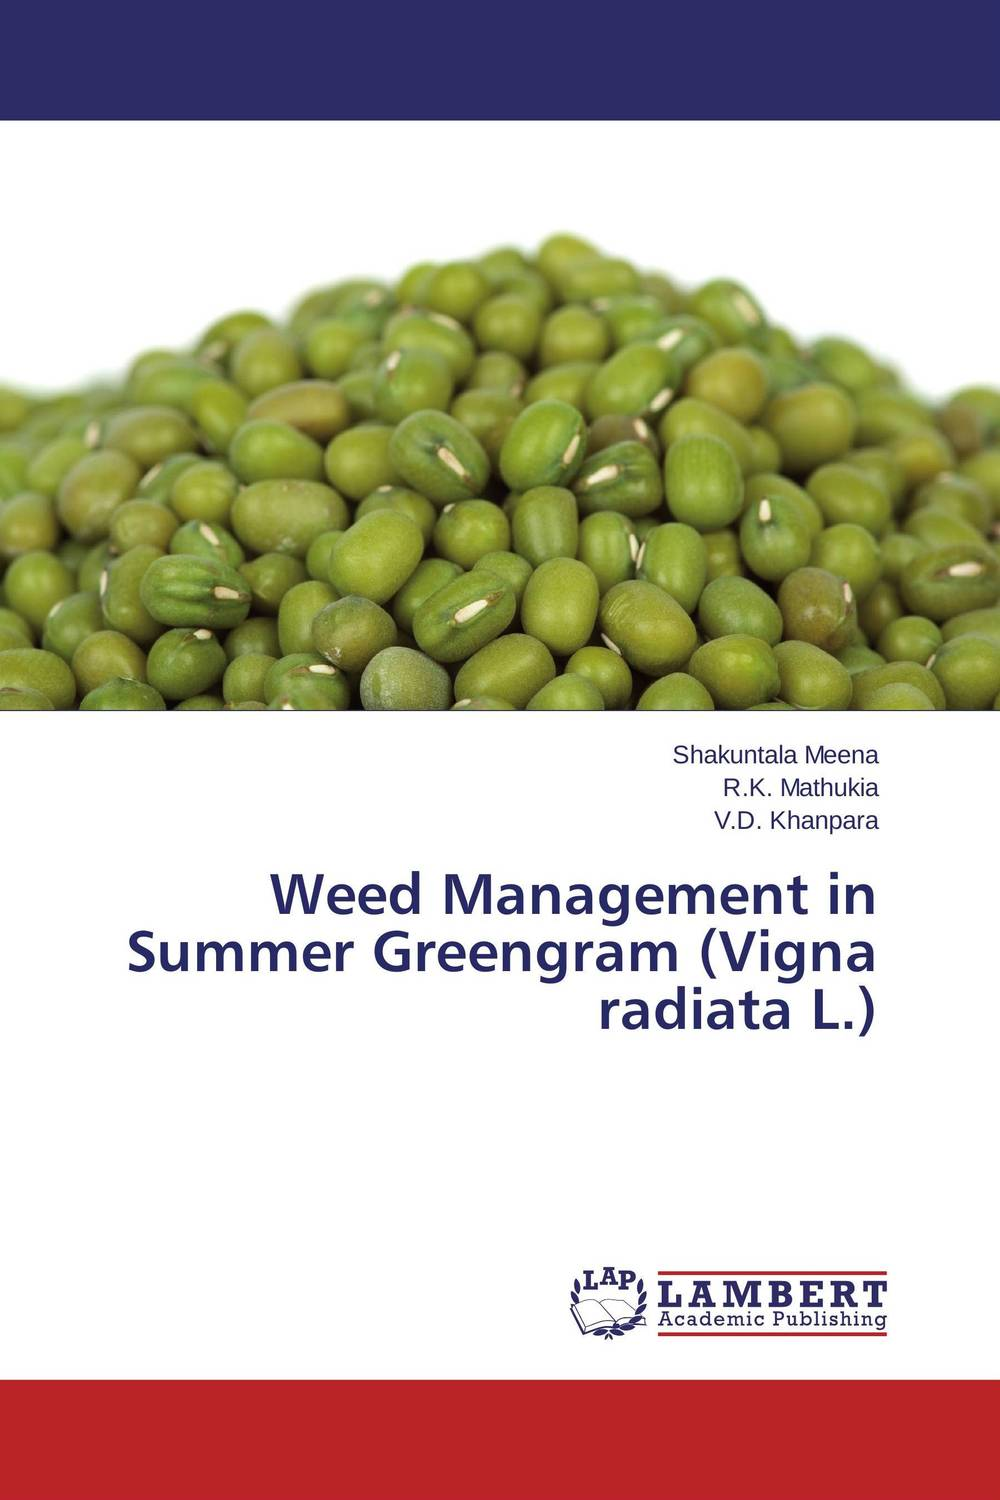 Weed Management in Summer Greengram (Vigna radiata L.) mohd mazid and taqi ahmed khan interaction between auxin and vigna radiata l under cadmium stress